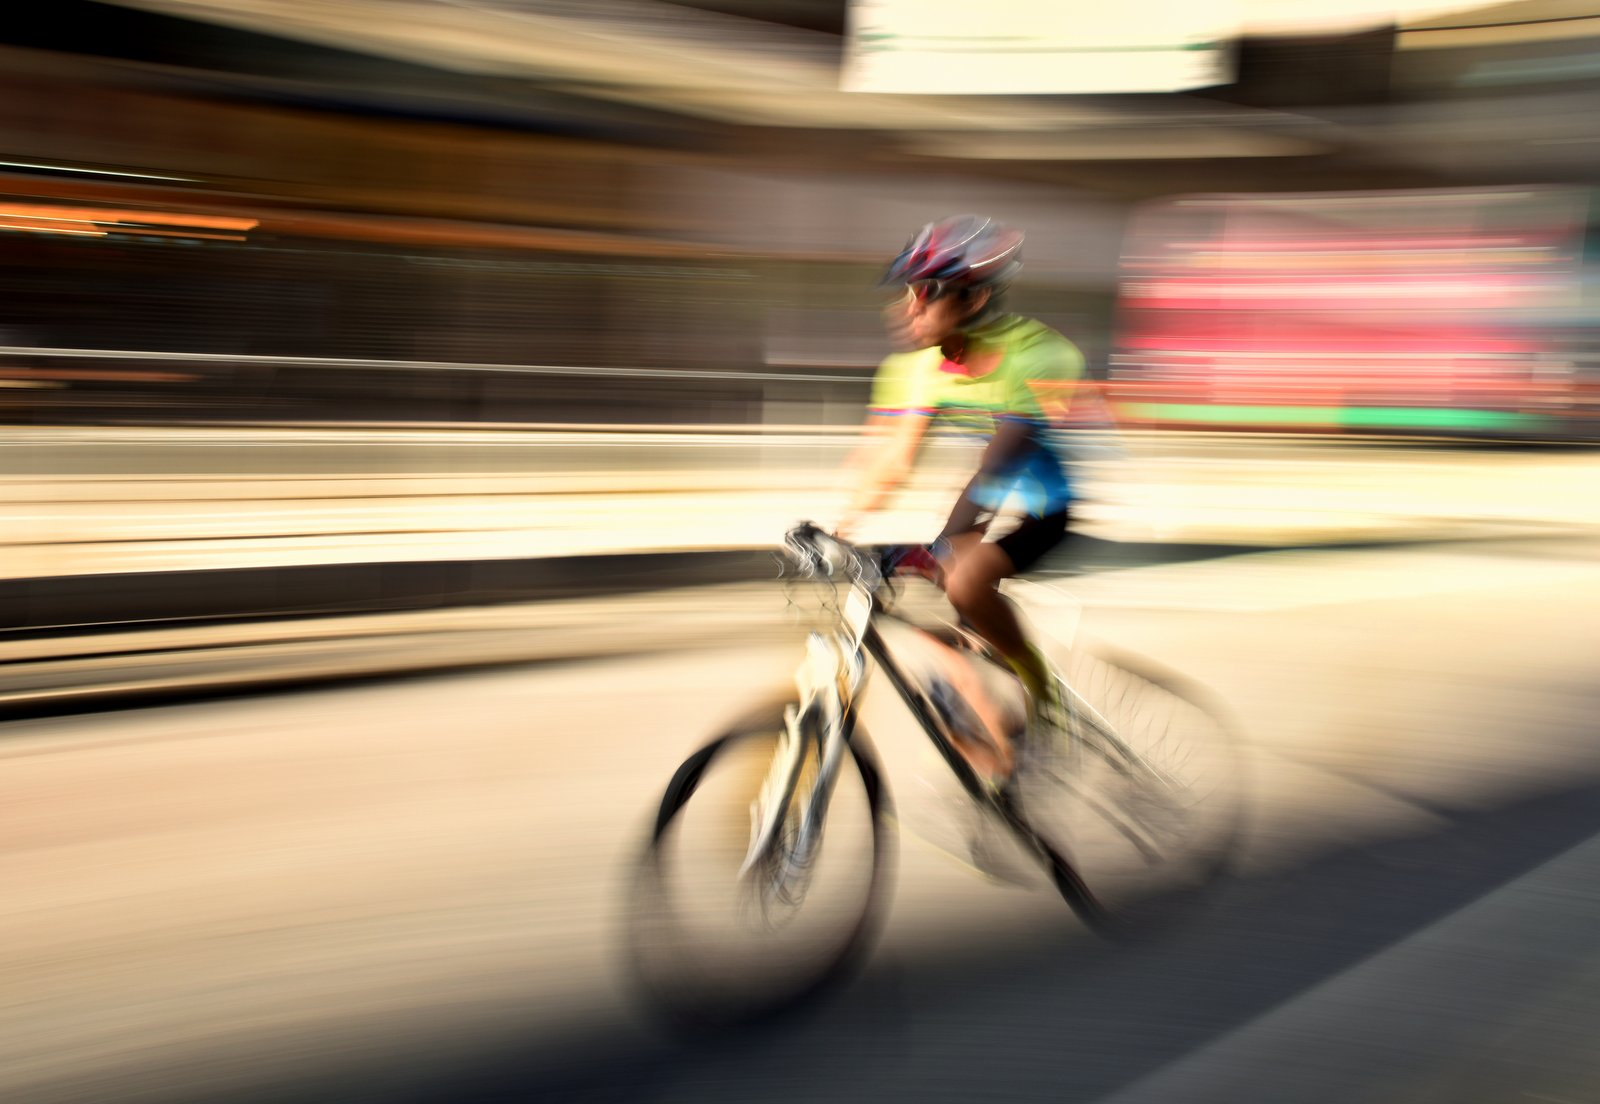 Cyclist, Motion photography tips and technique example: long exposure (all blurred)